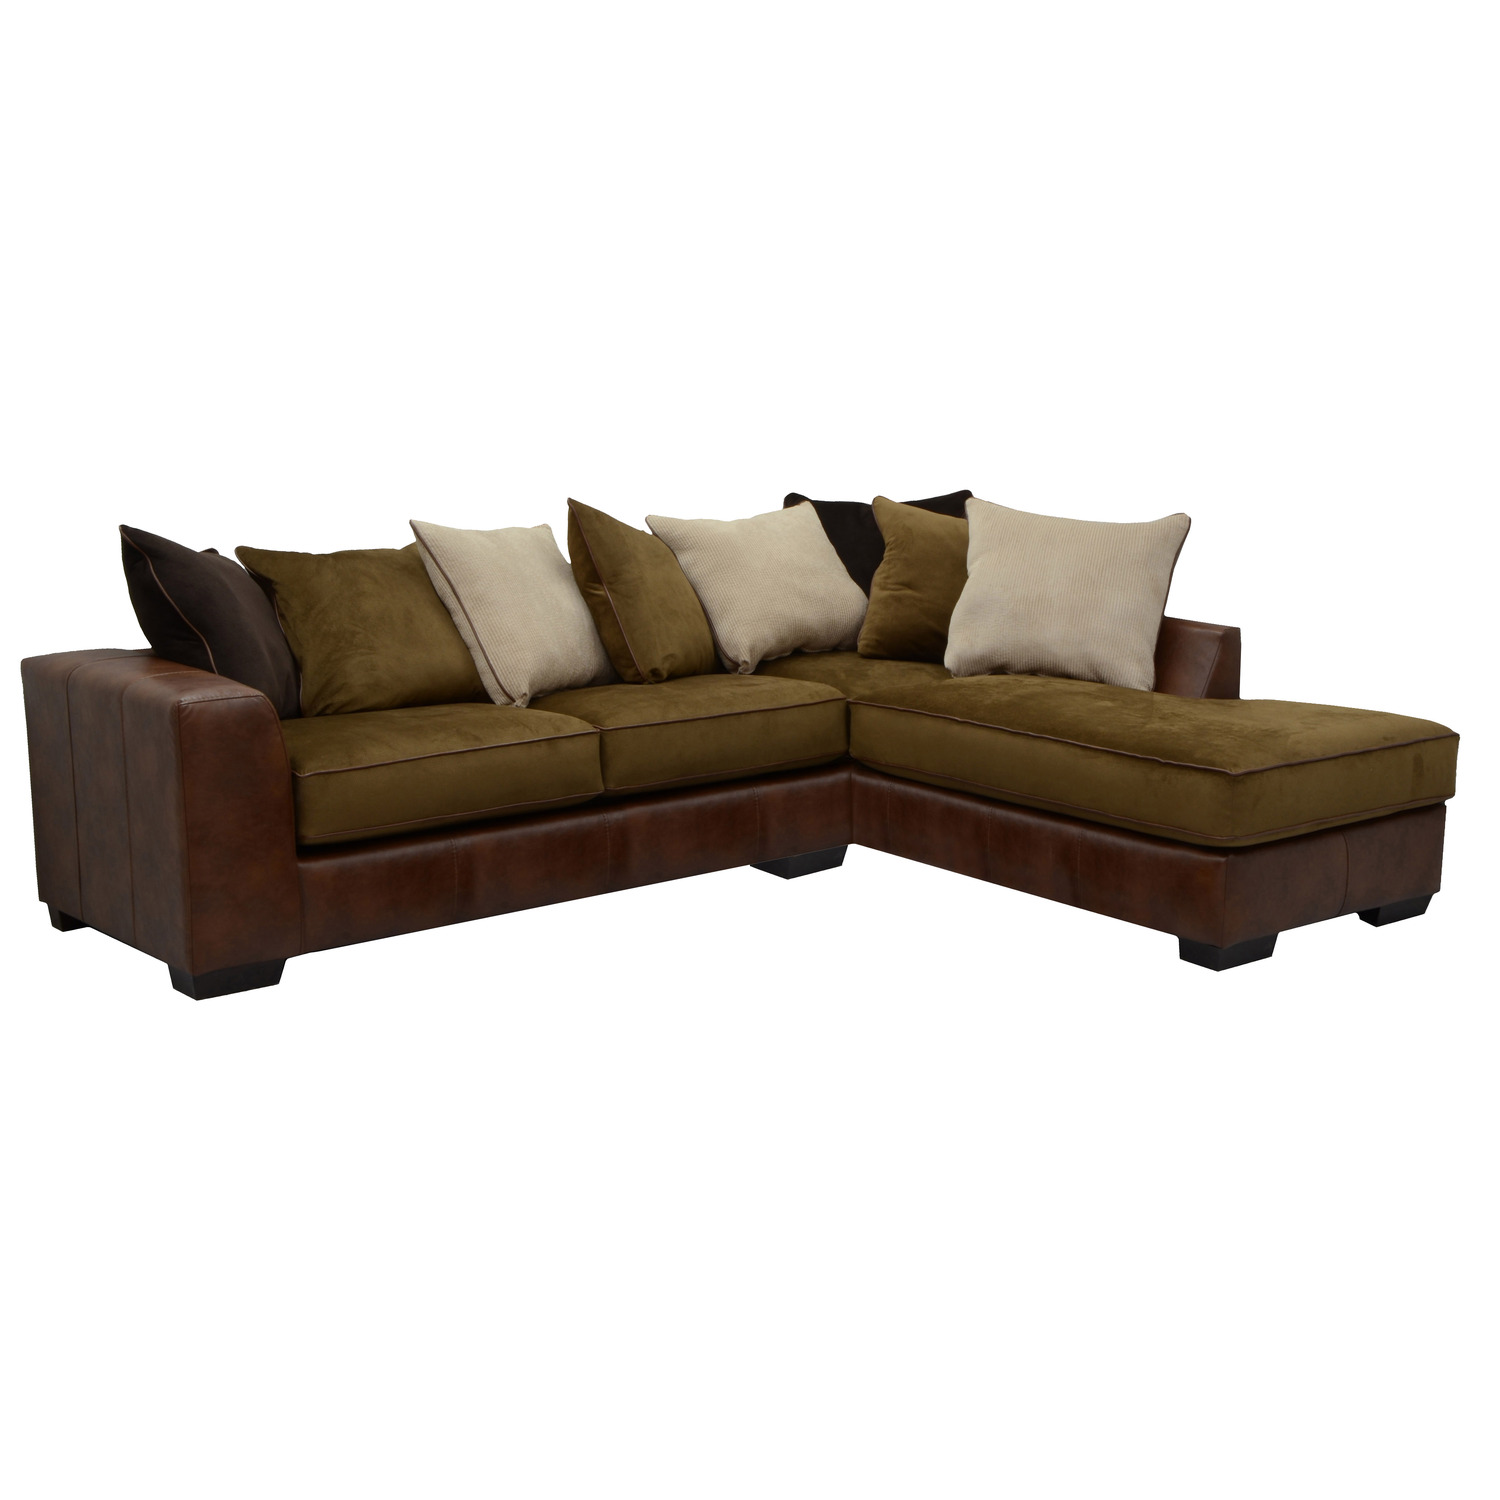 Jackson Furniture Strickland Sectional By Oj Commerce 4456 62 76 1223 09 1